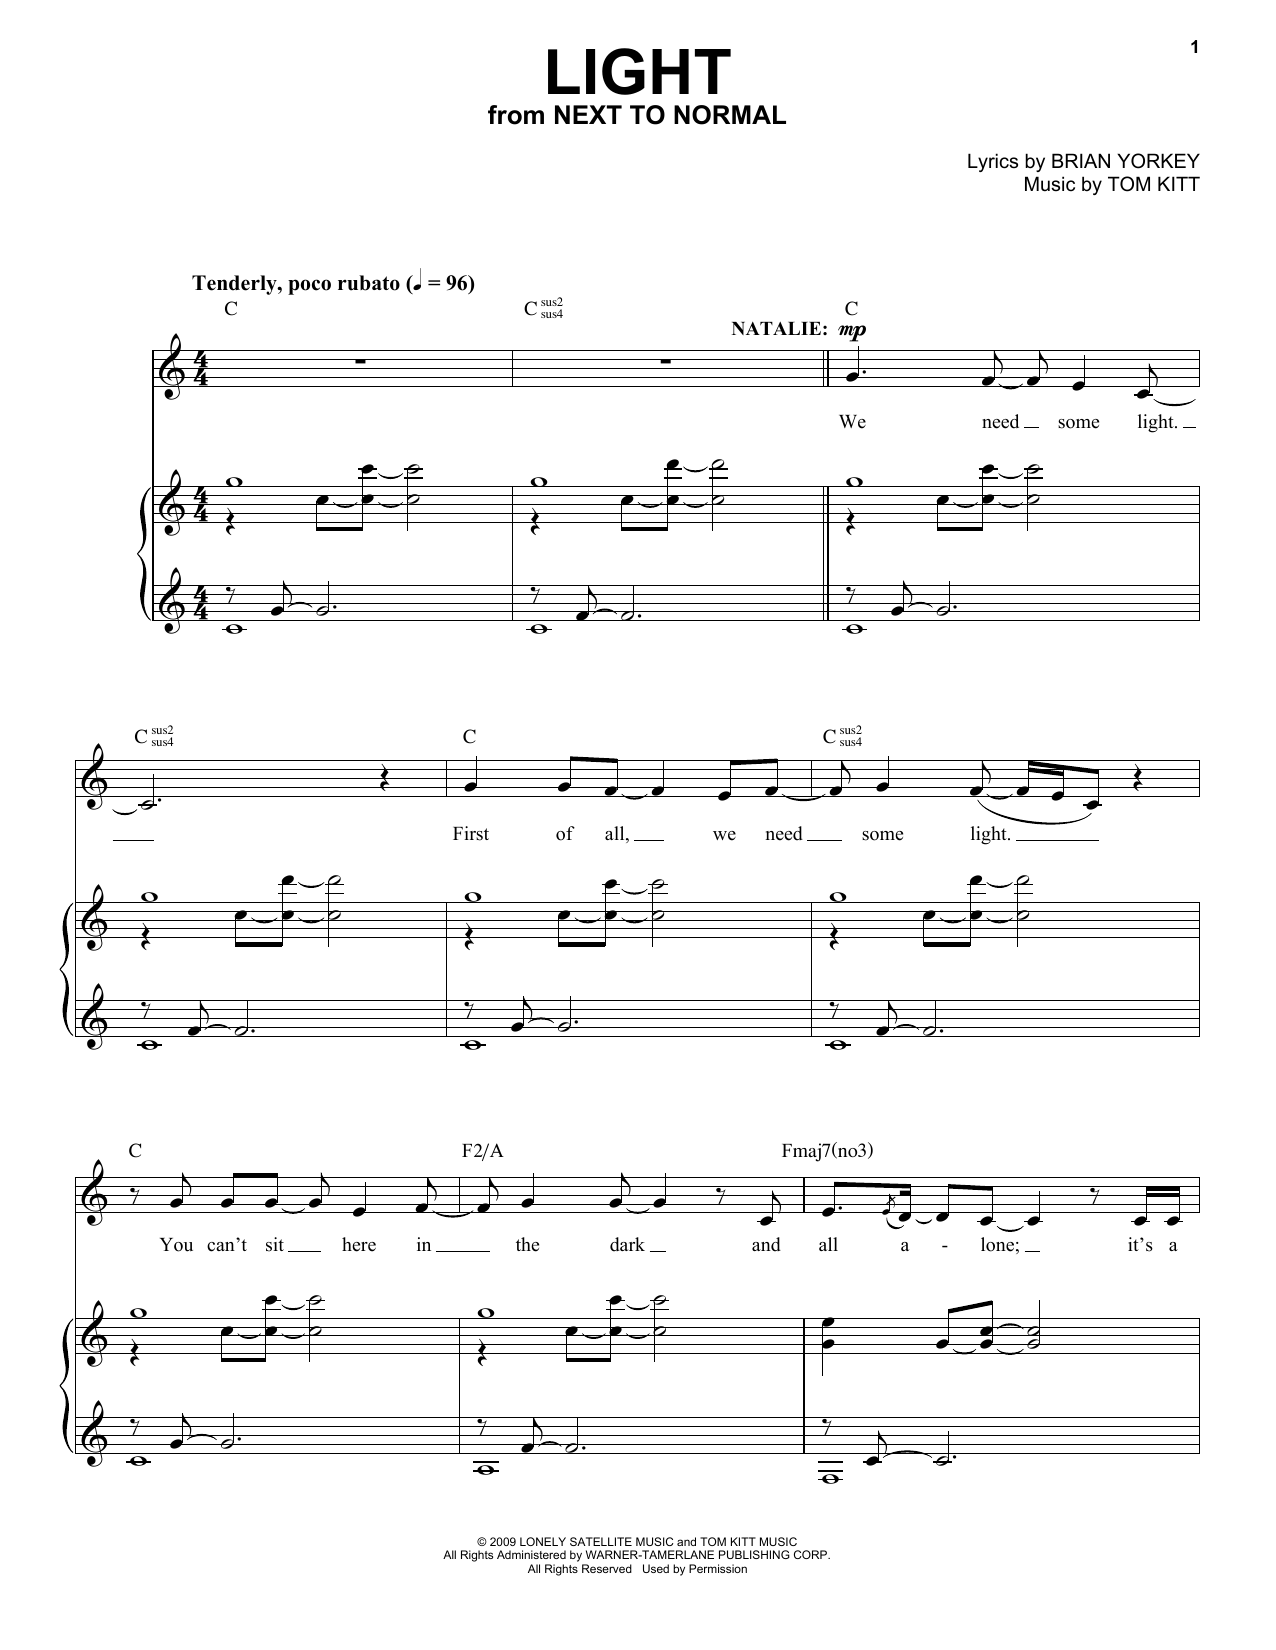 Next to Normal Cast Light (from Next to Normal) sheet music notes and chords. Download Printable PDF.